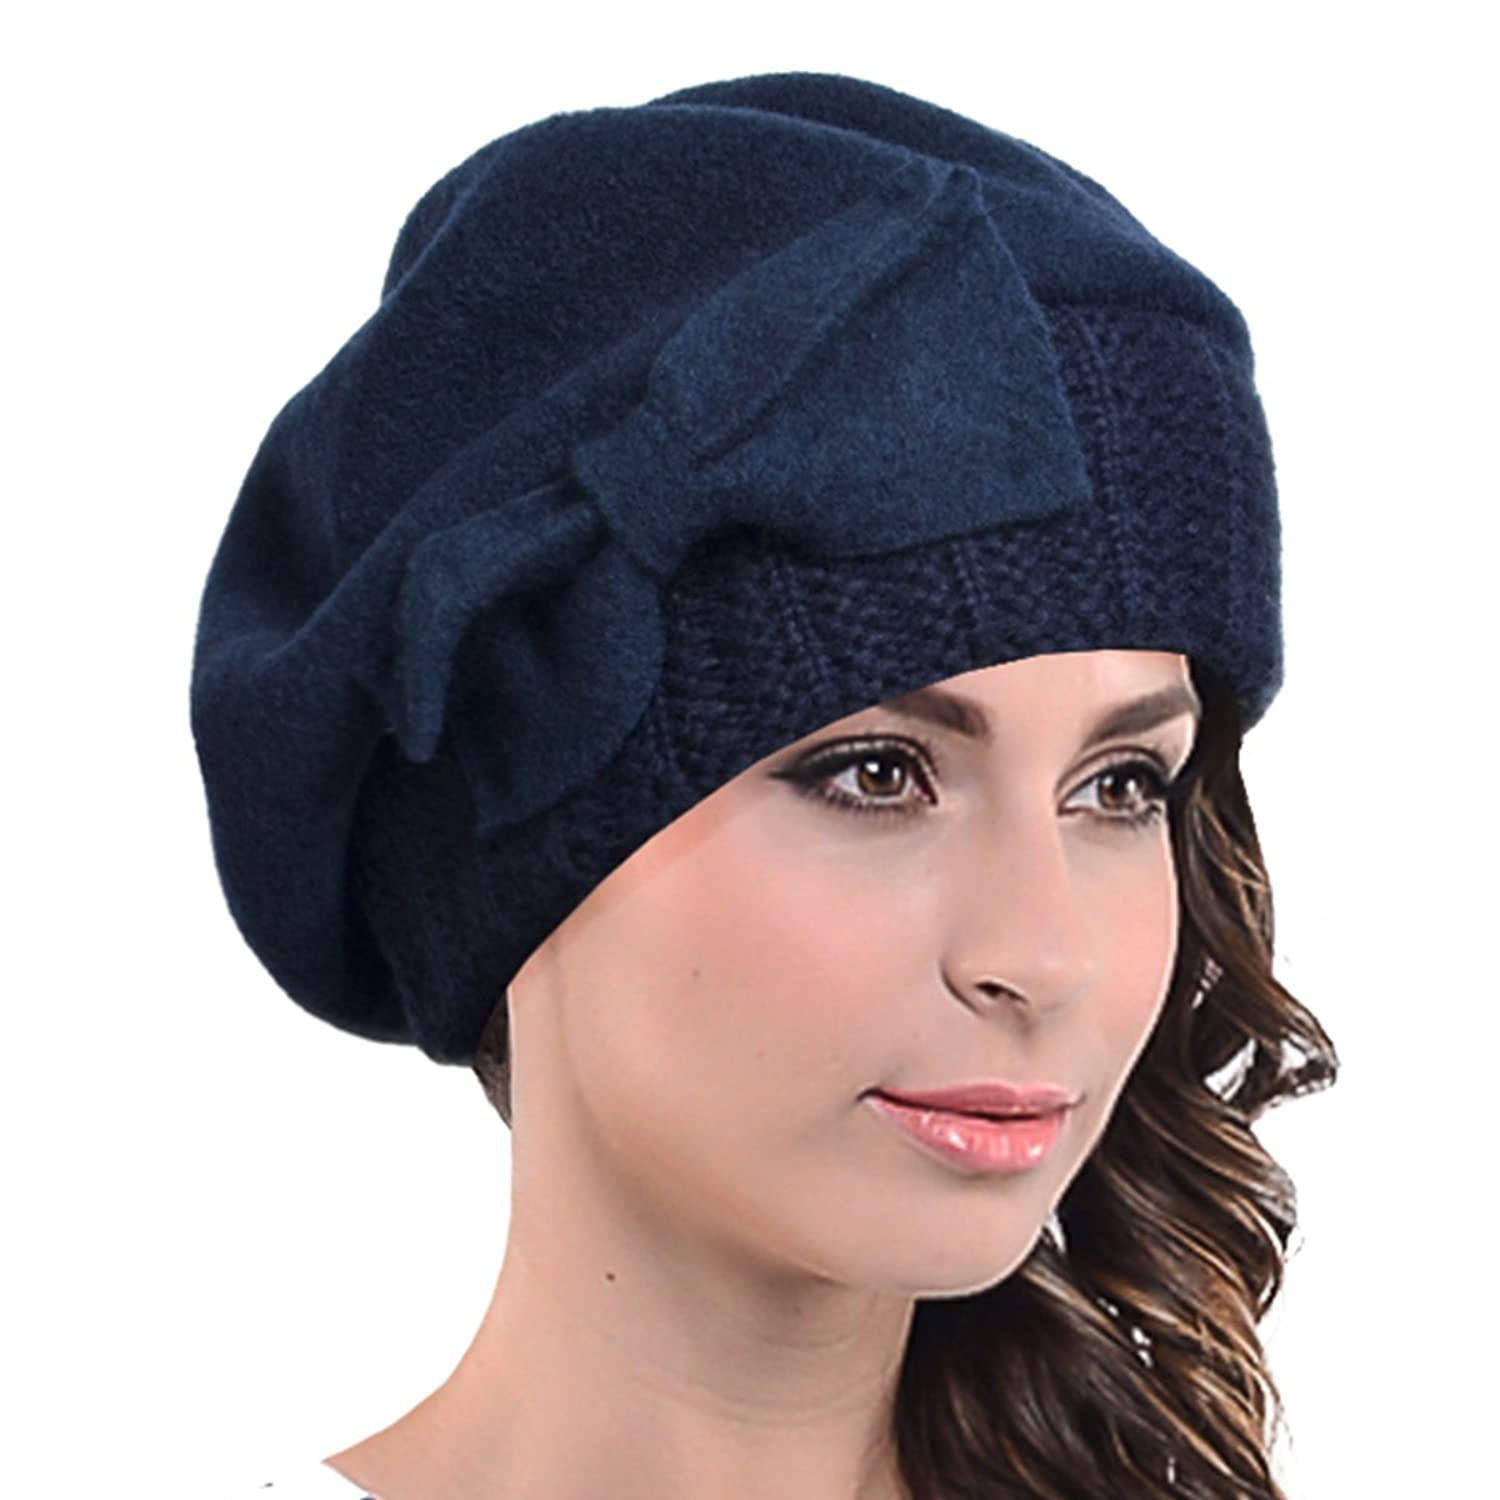 1920s Flapper Headband, Gatsby Headpiece, Wigs Lady French Beret Wool Beret Chic Beanie Winter Hat Jf-br034 $21.99 AT vintagedancer.com